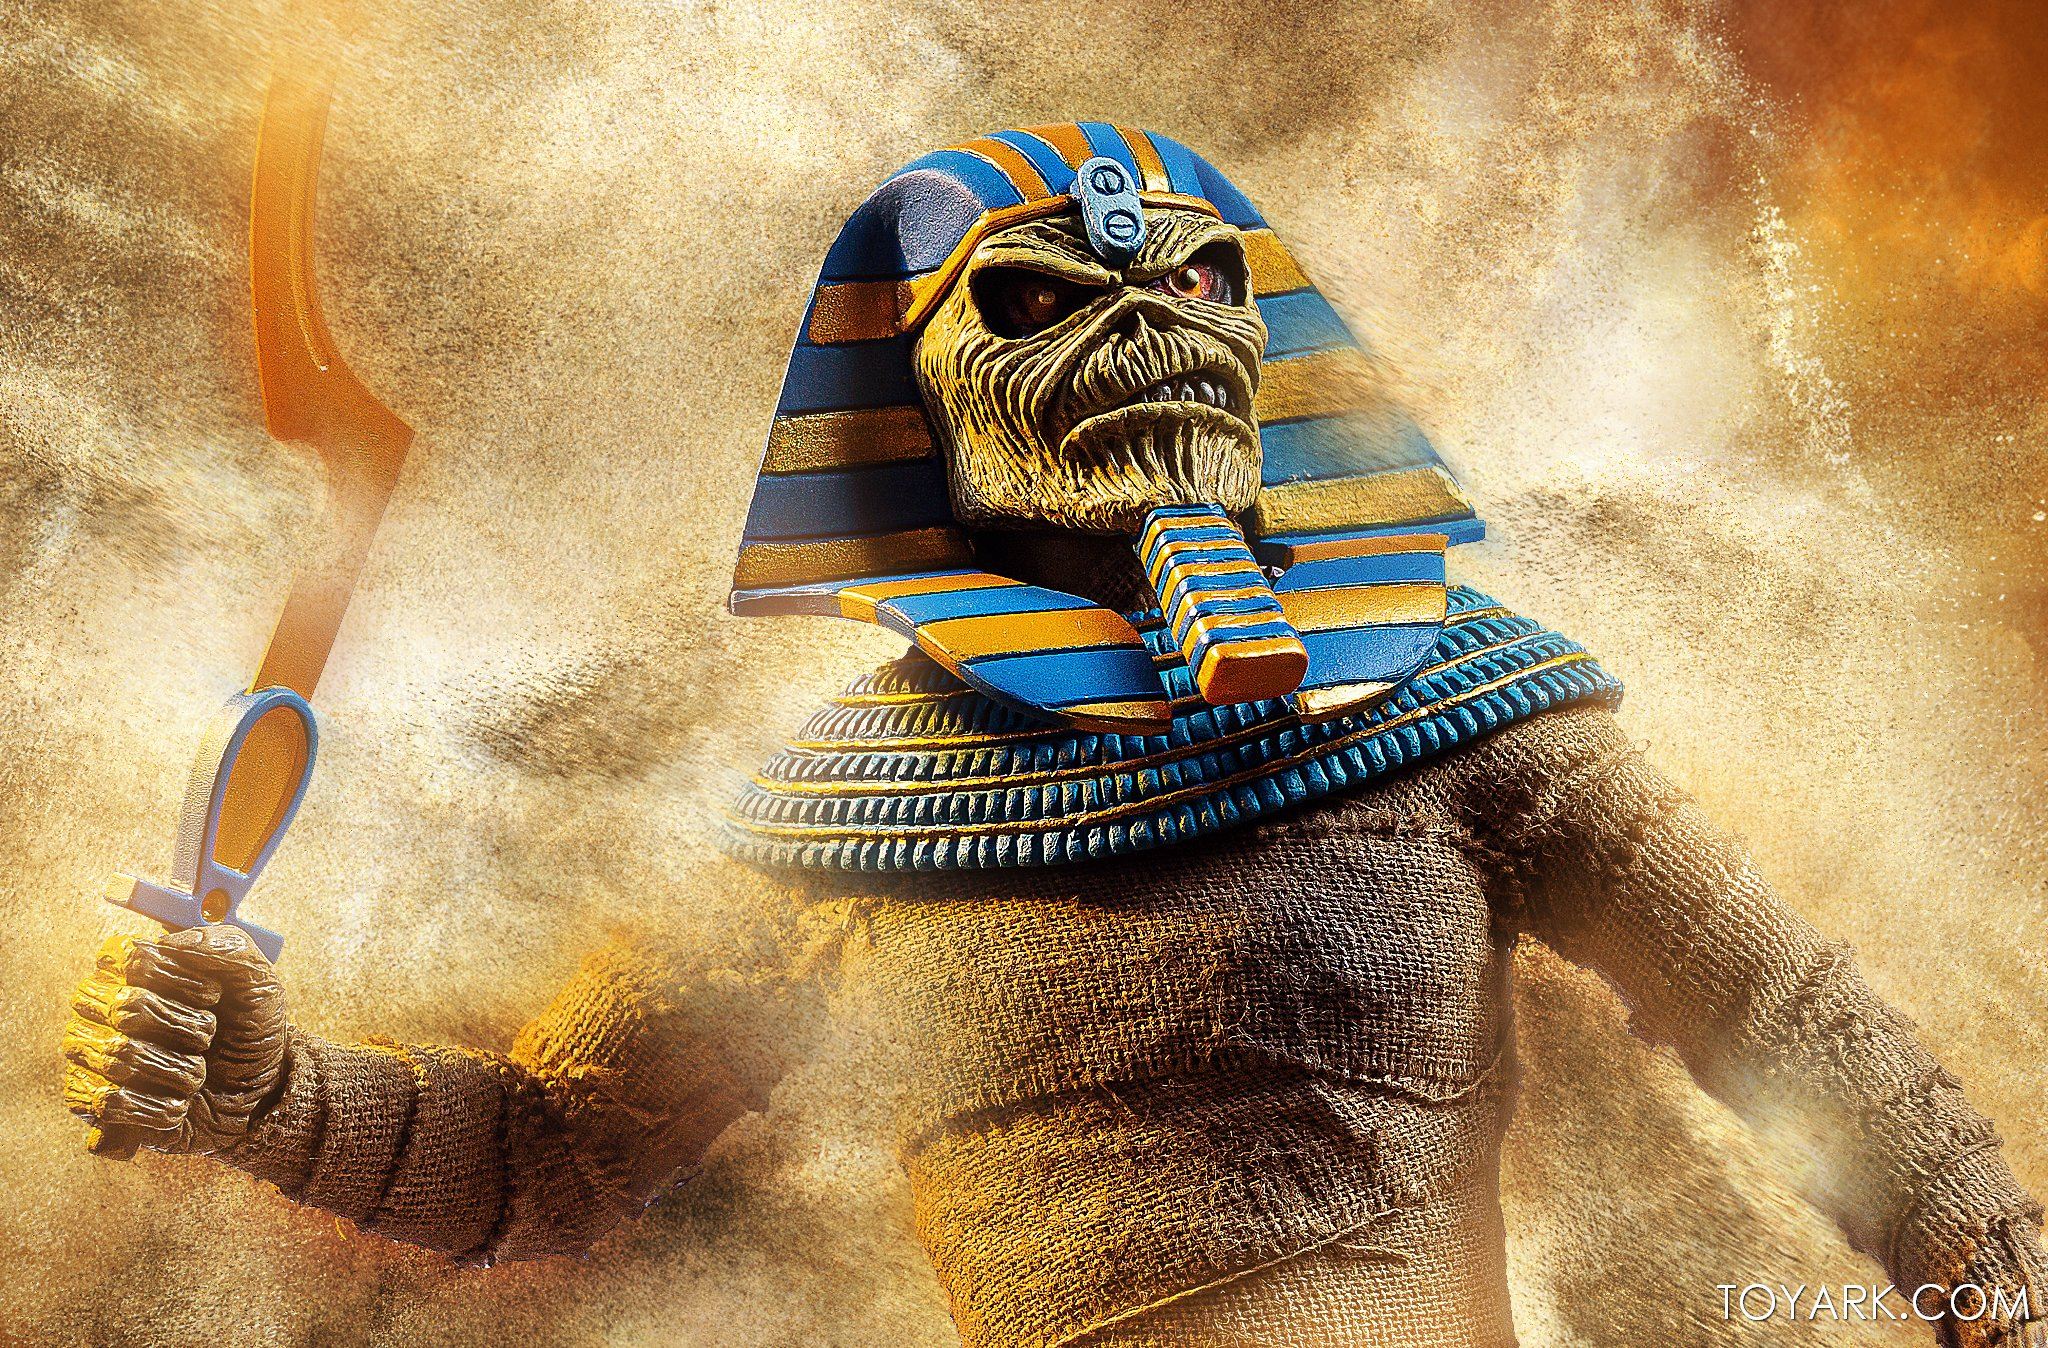 https://news.toyark.com/wp-content/uploads/sites/4/2020/06/NECA-Iron-Maiden-Powerslave-Eddie-016.jpg